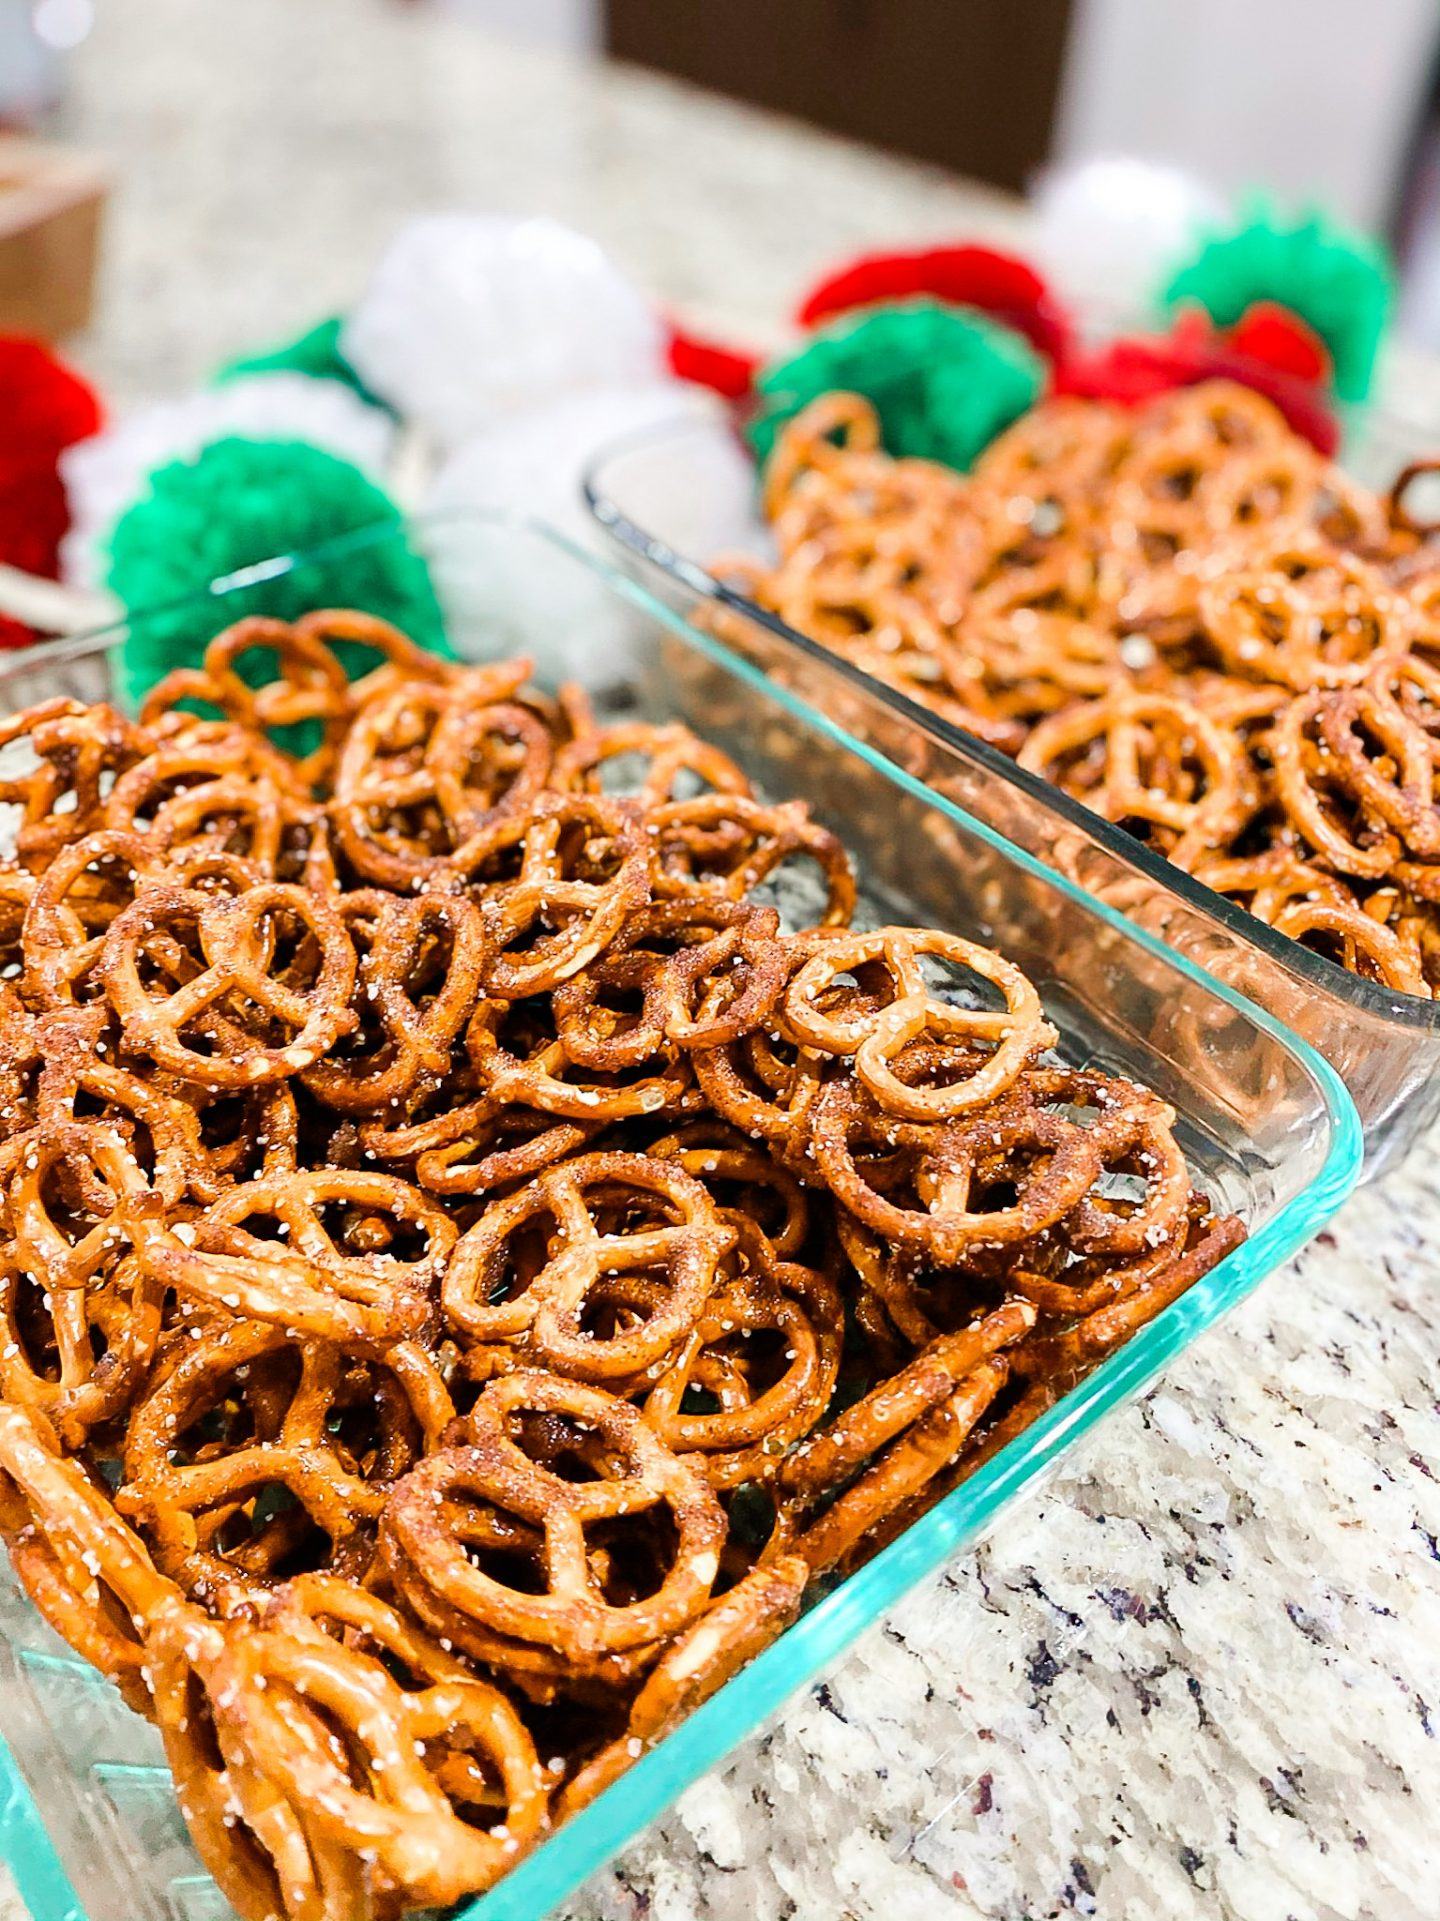 Cinnamon Sugar Pretzels by Alabama Life + Style blogger, Heather Brown // My Life Well Loved